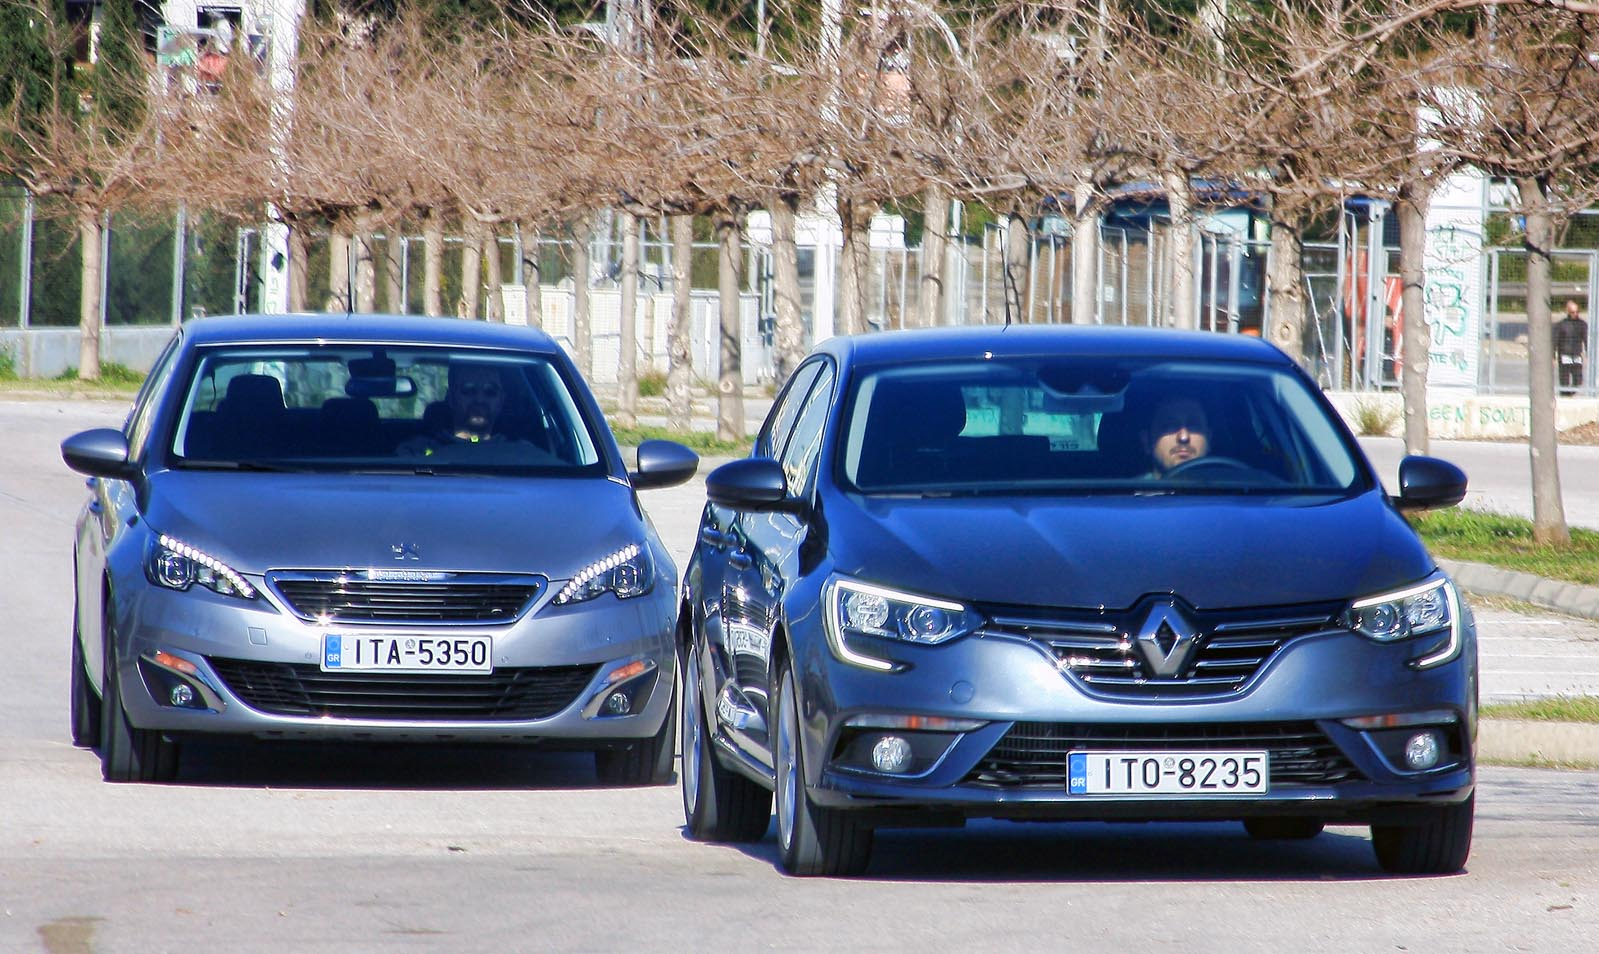 Photo of Peugeot 308 1.6 BlueHDI vs Renault Megane 1.5 dCi 110 [test drive]